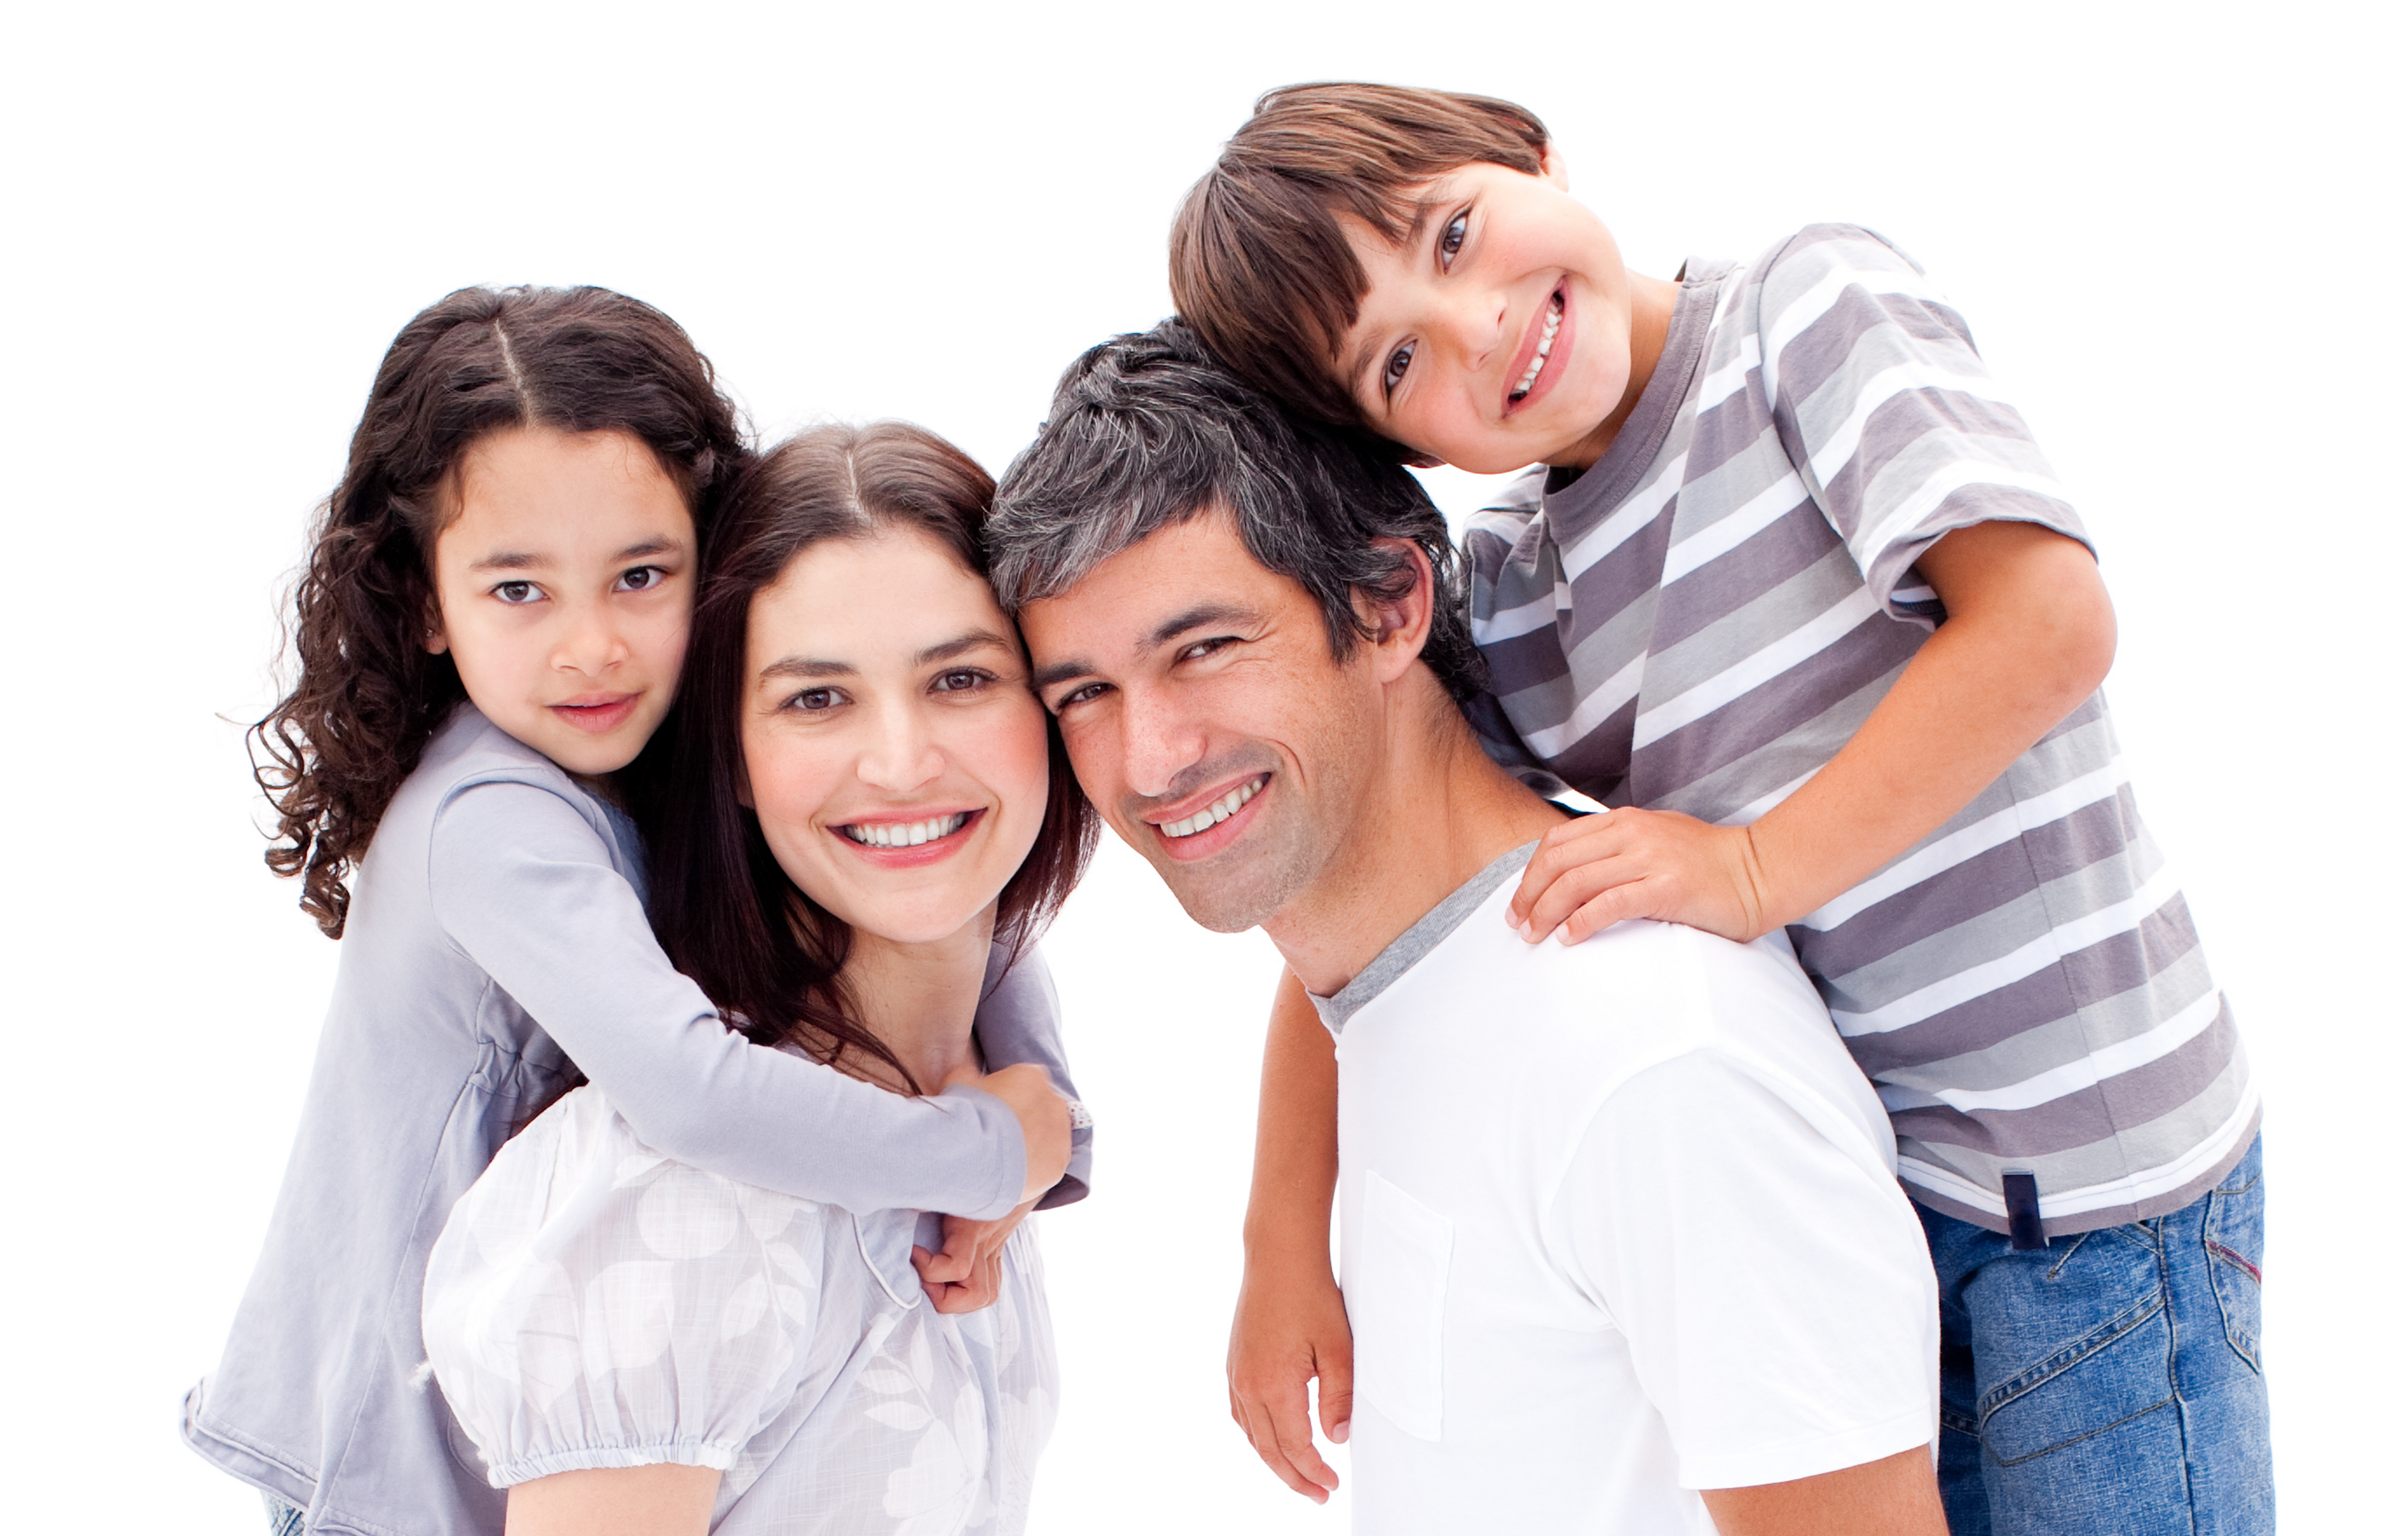 How does a family adjust their level of life insurance?